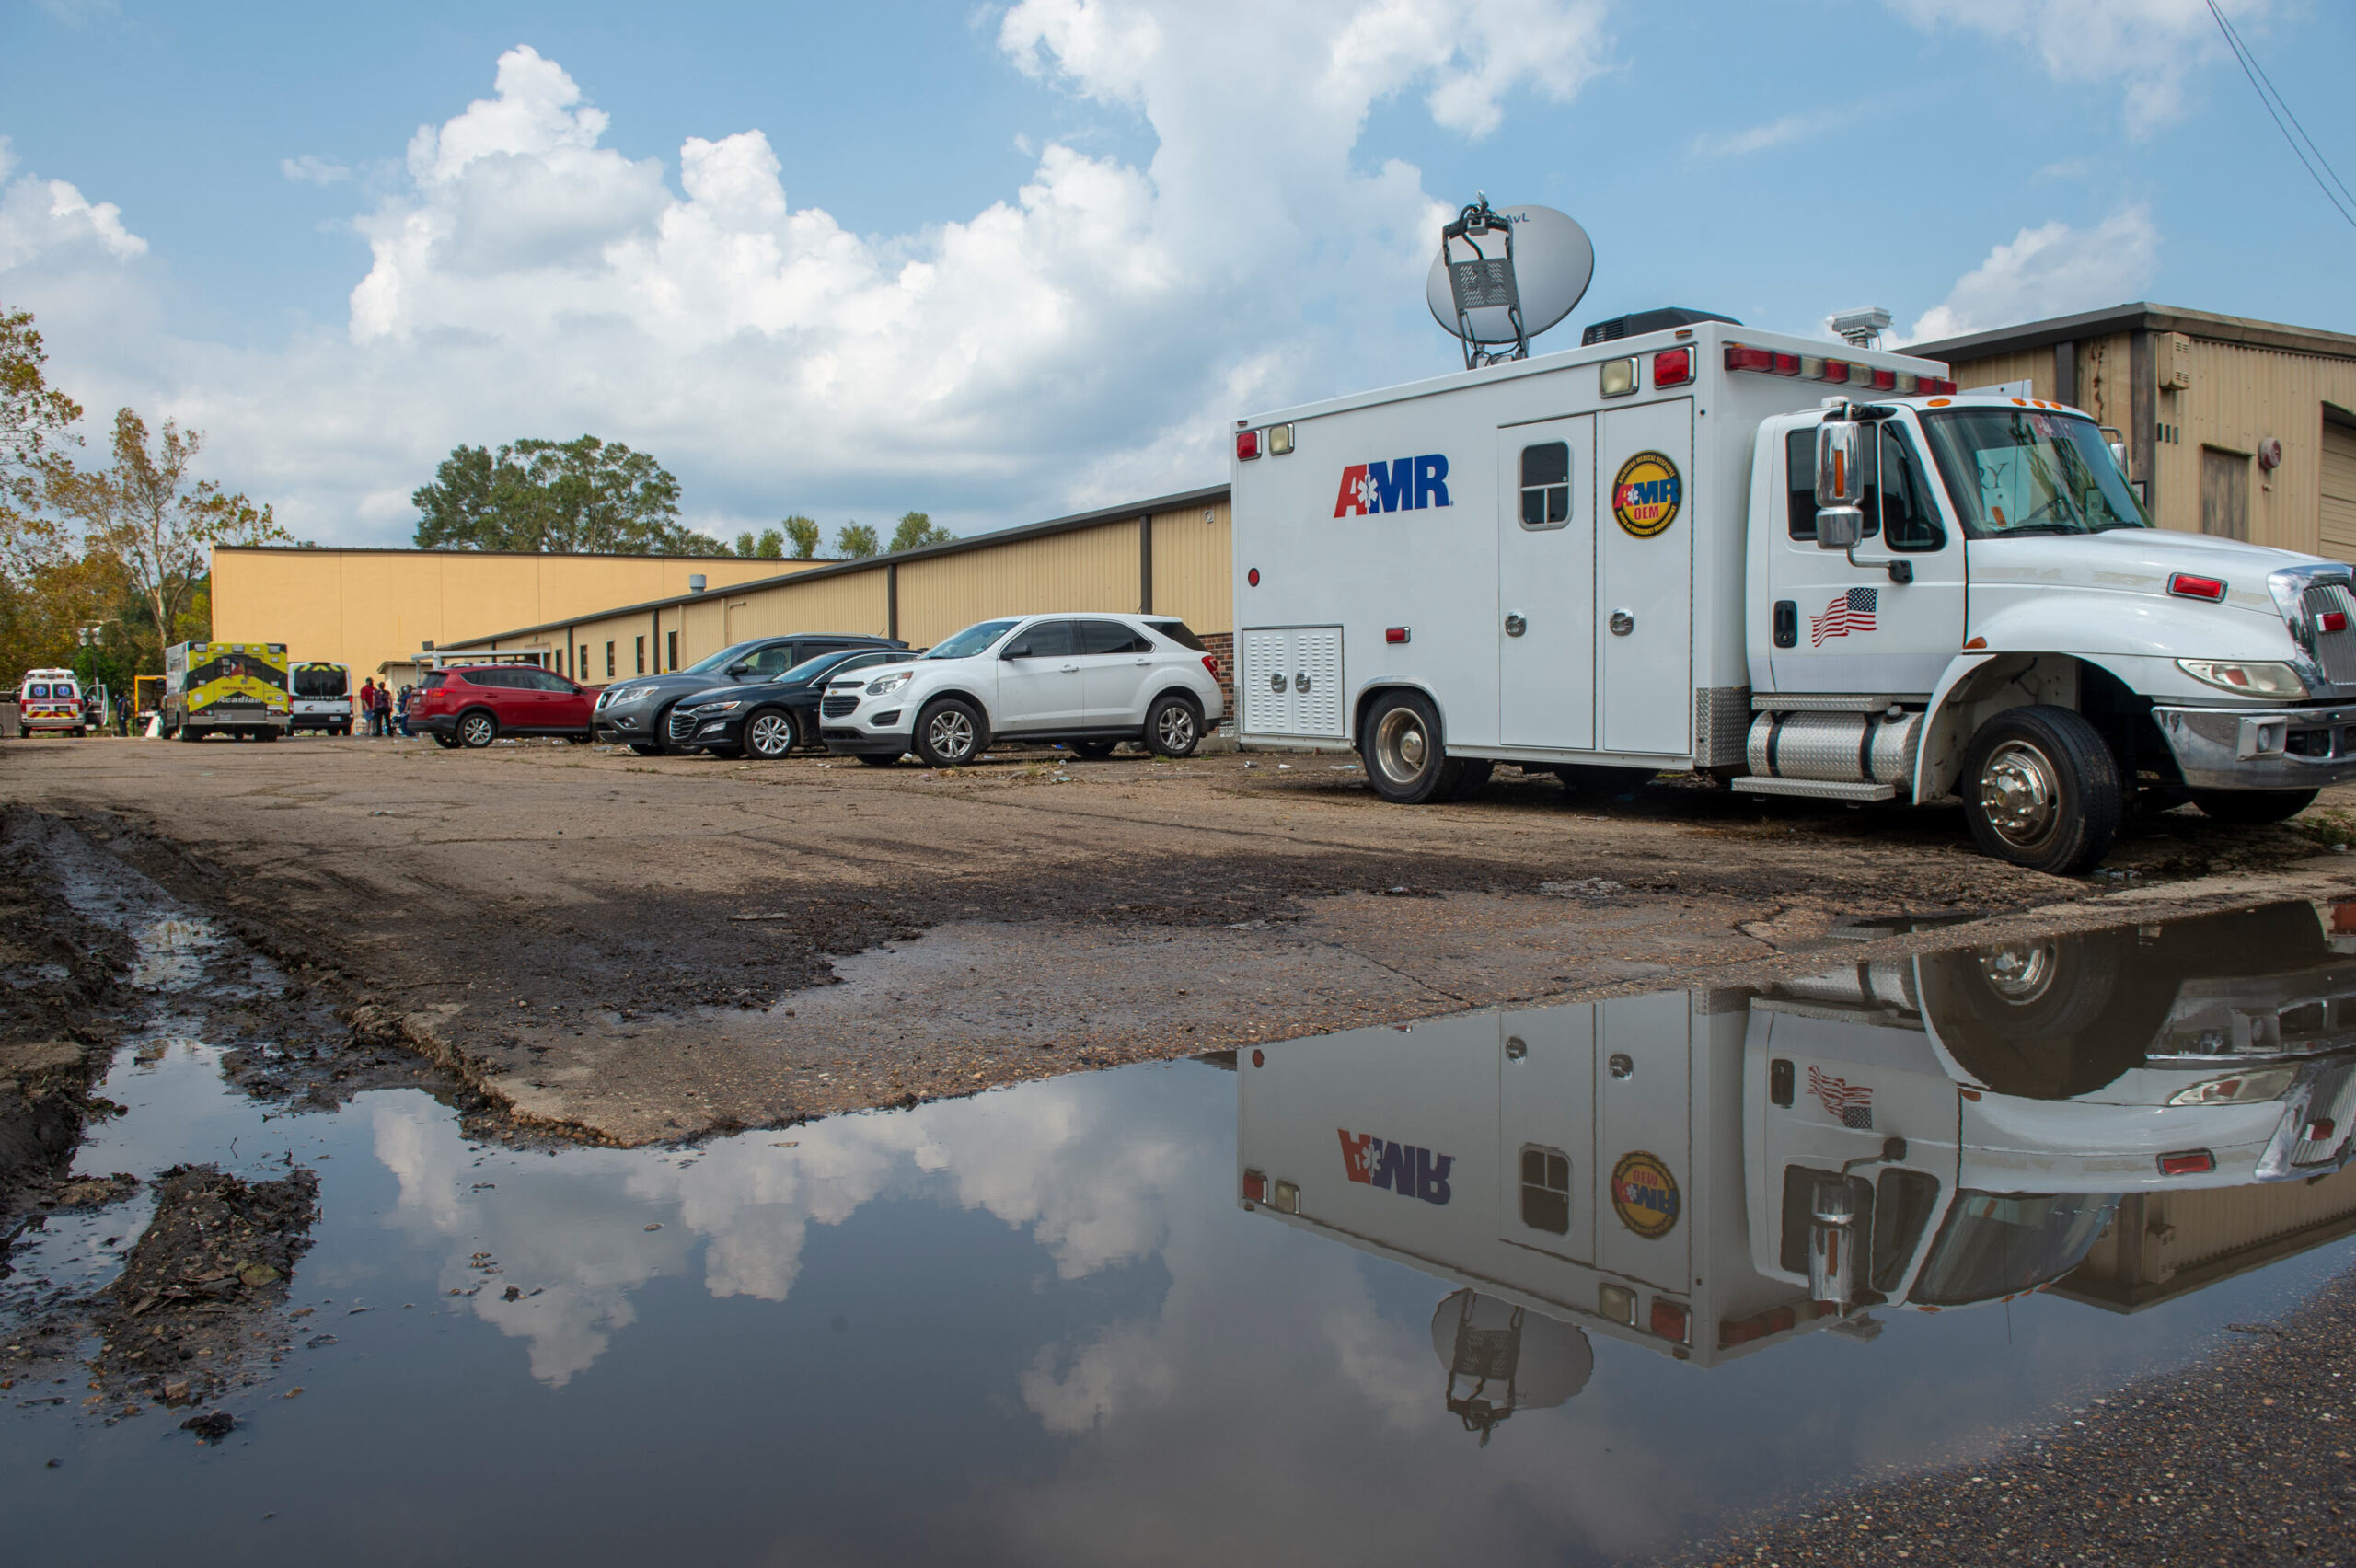 <i>Chris Granger/The Times-Picayune/The New Orleans Advocate/AP</i><br/>The Louisiana Department of Health was aware of plans to evacuate nursing home residents to a warehouse to shelter during Hurricane Ida. Pictured is a mass shelter in Independence